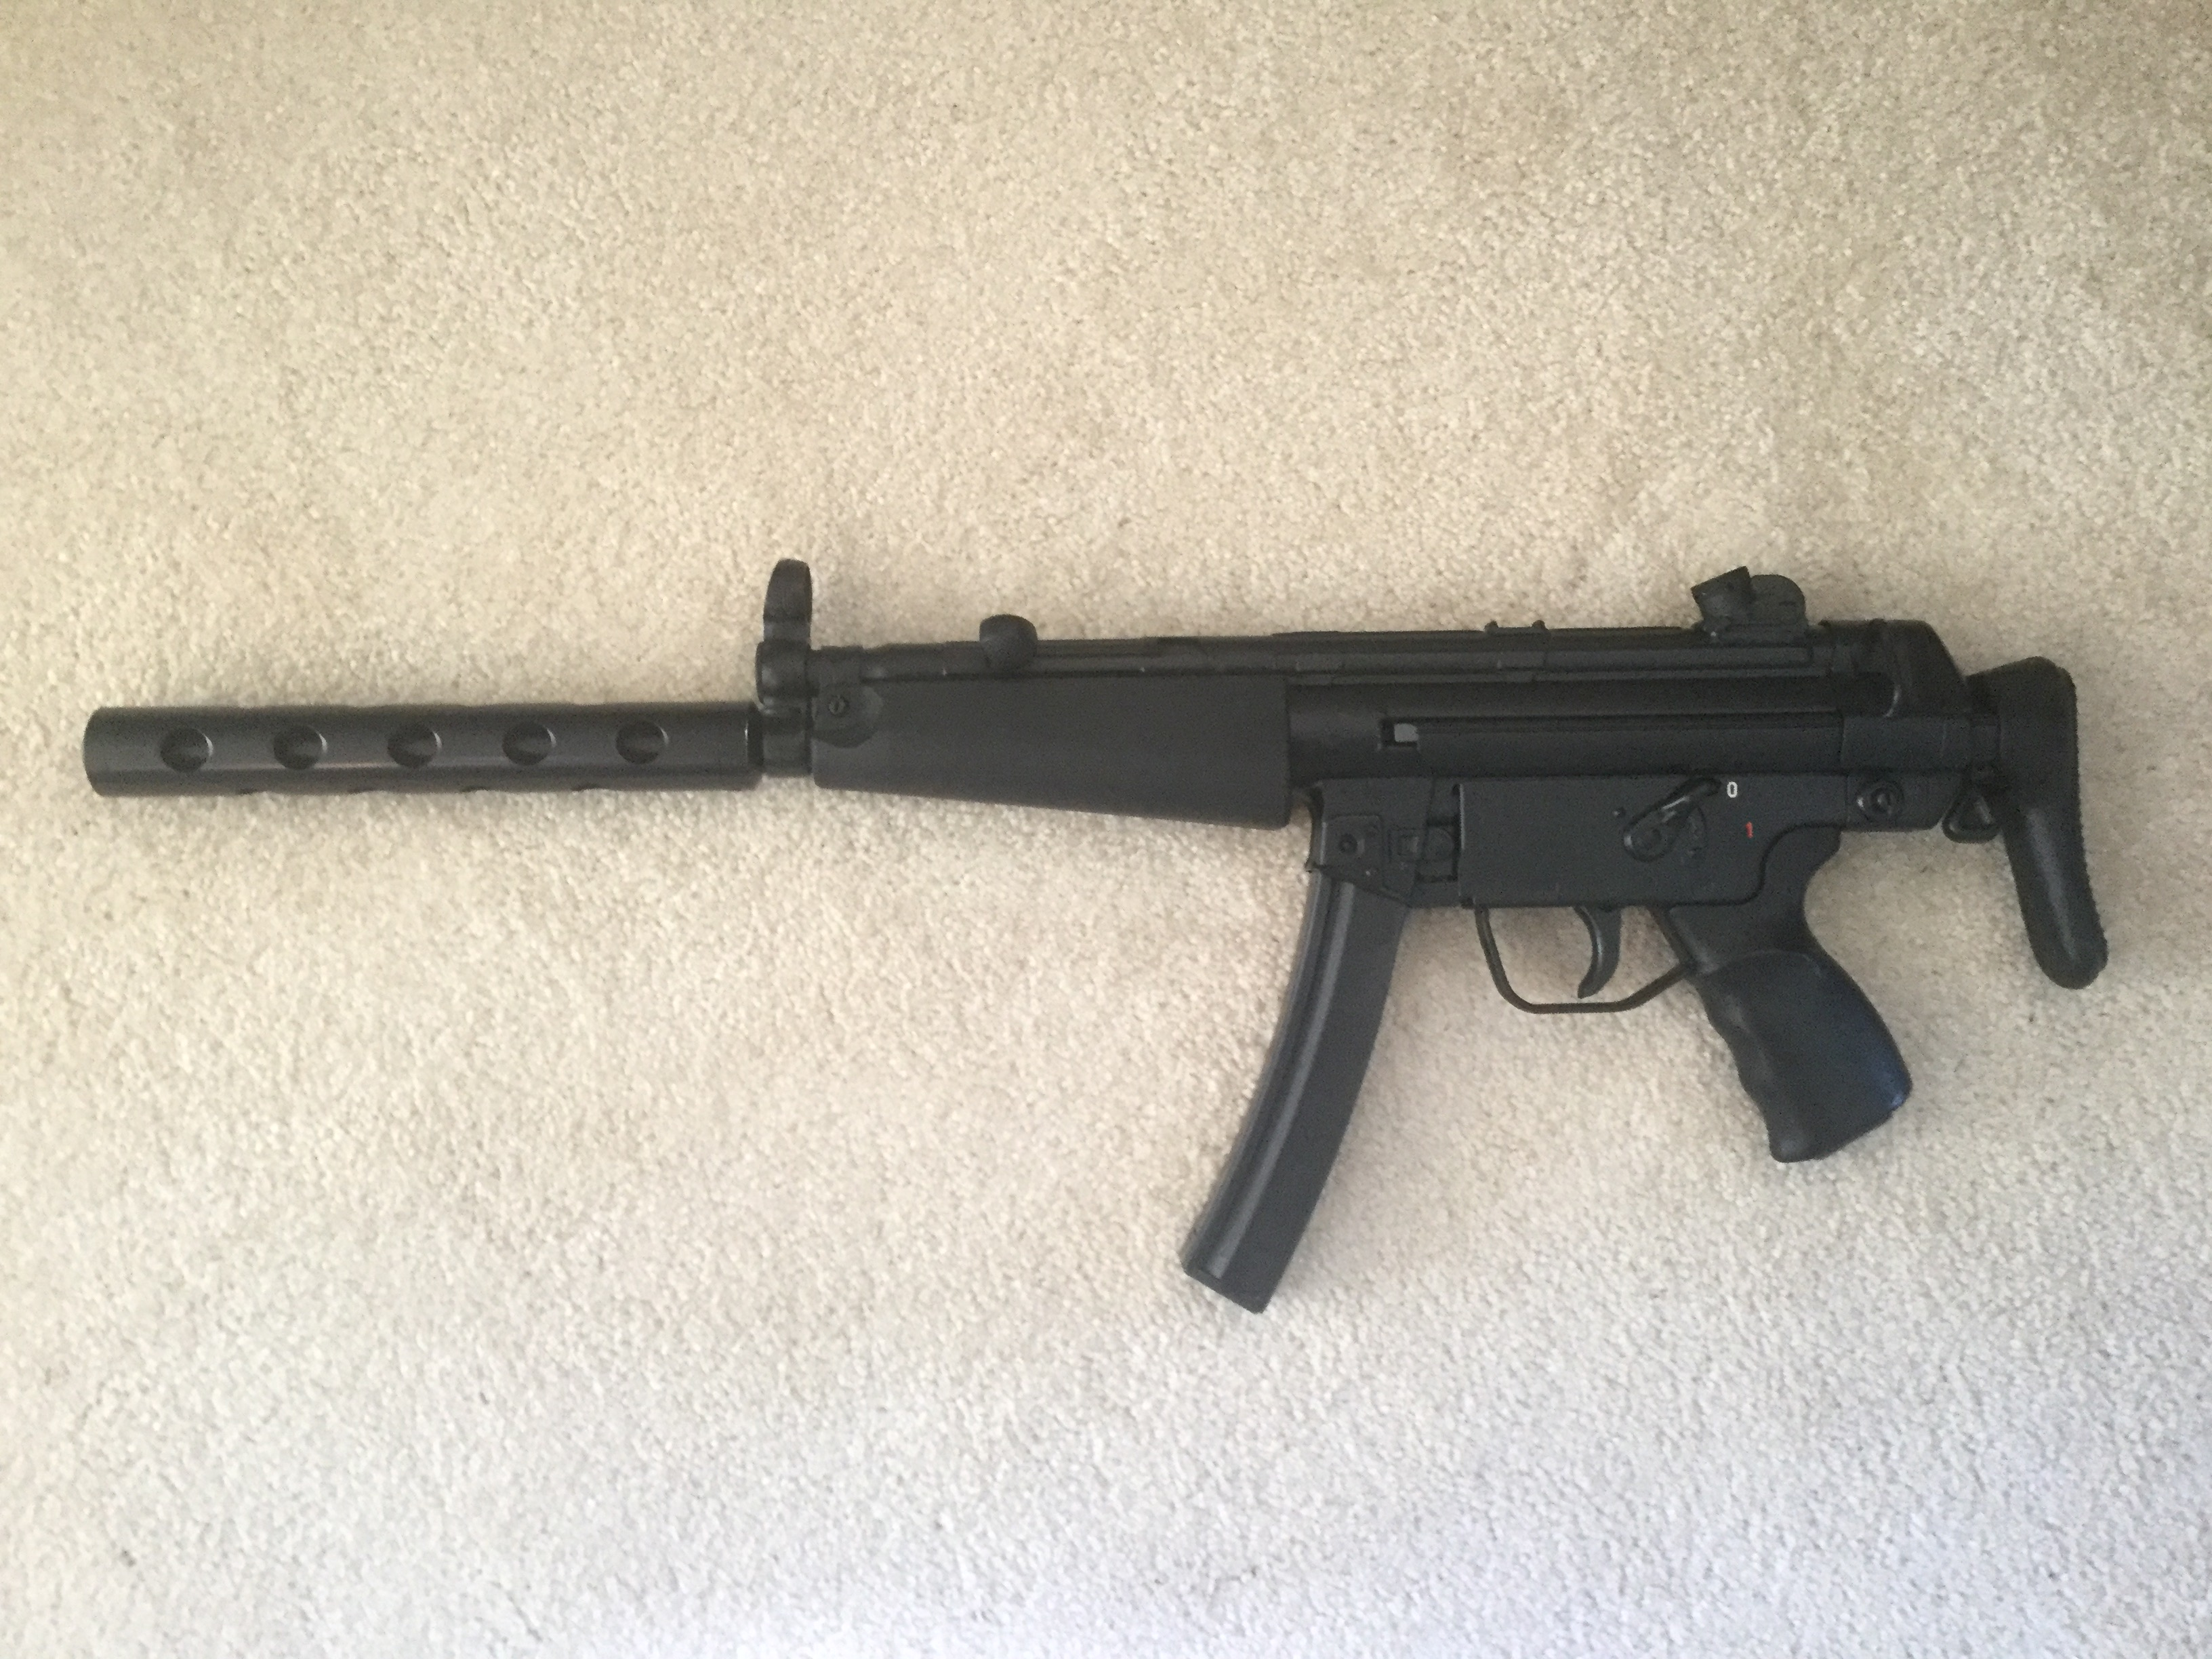 Inherited a HK94 with 16inch barrel want to swap to MP5-4feda02b-6979-428d-b4fa-3f8f09828a26.jpeg